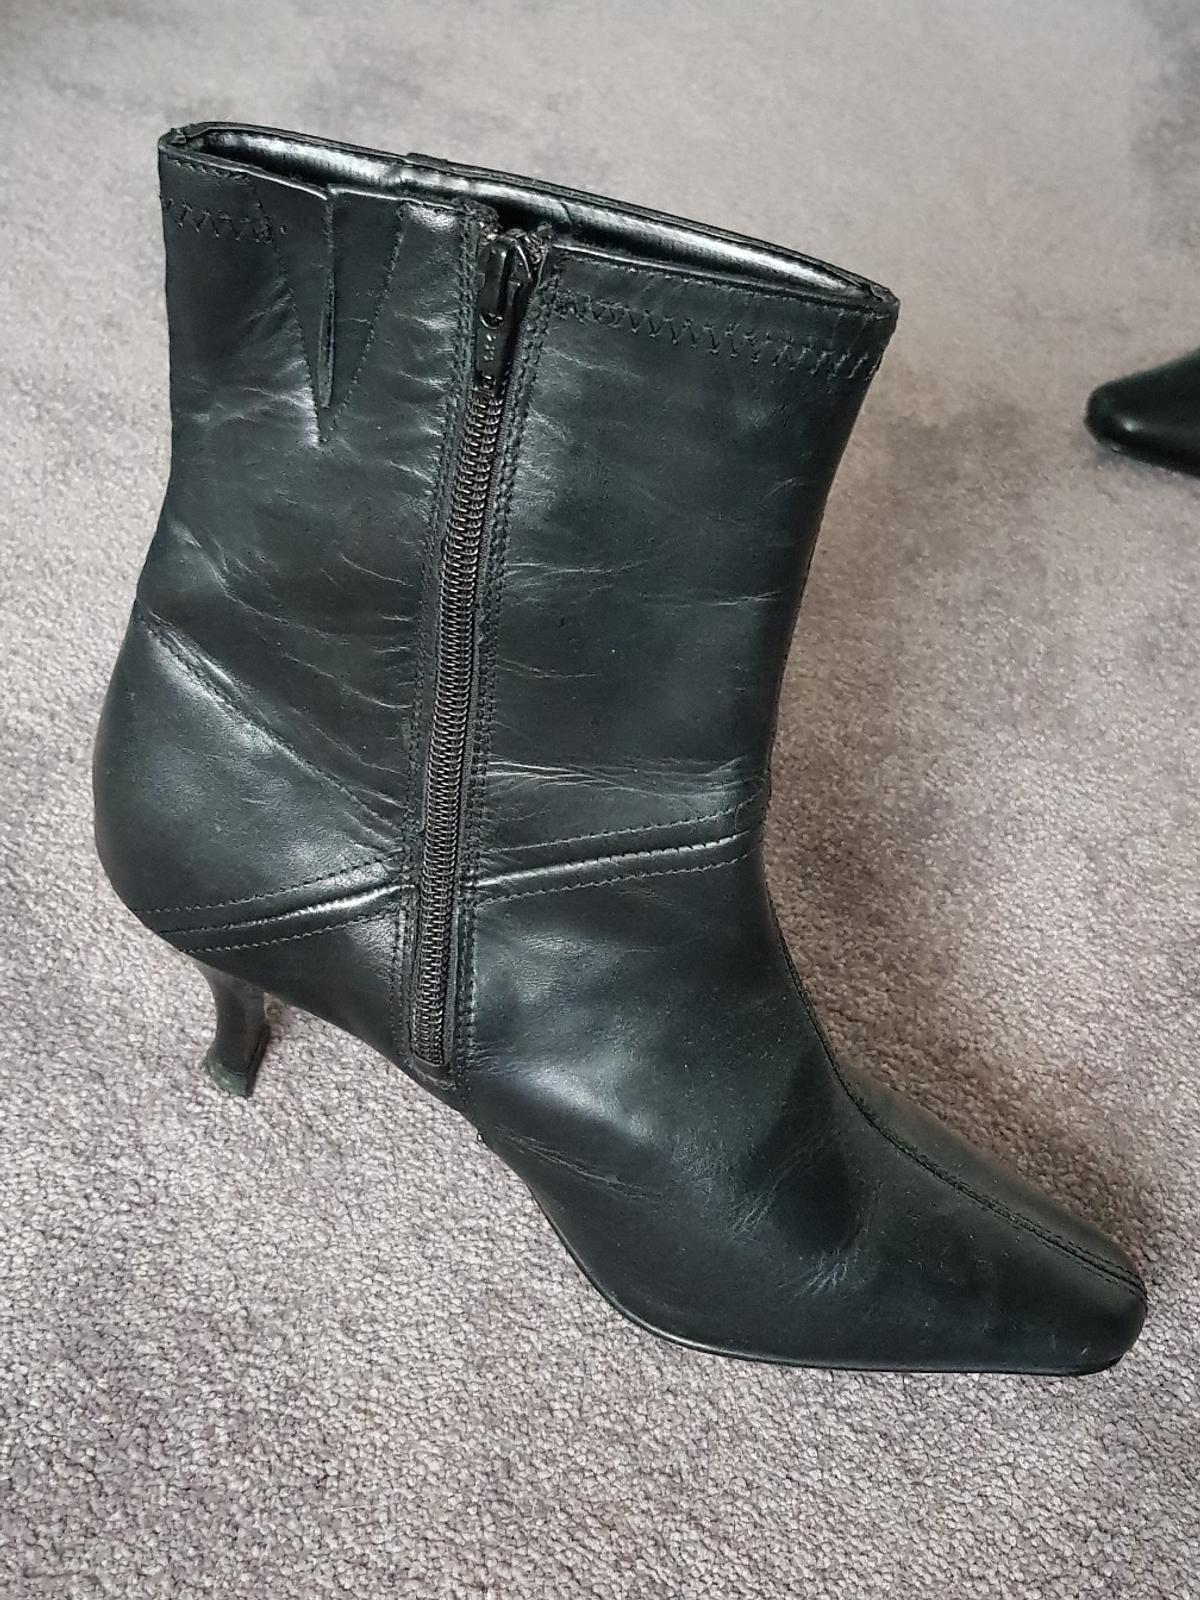 4d296bb62765e Vintage 90's Black Leather Ankle Boots Size 4